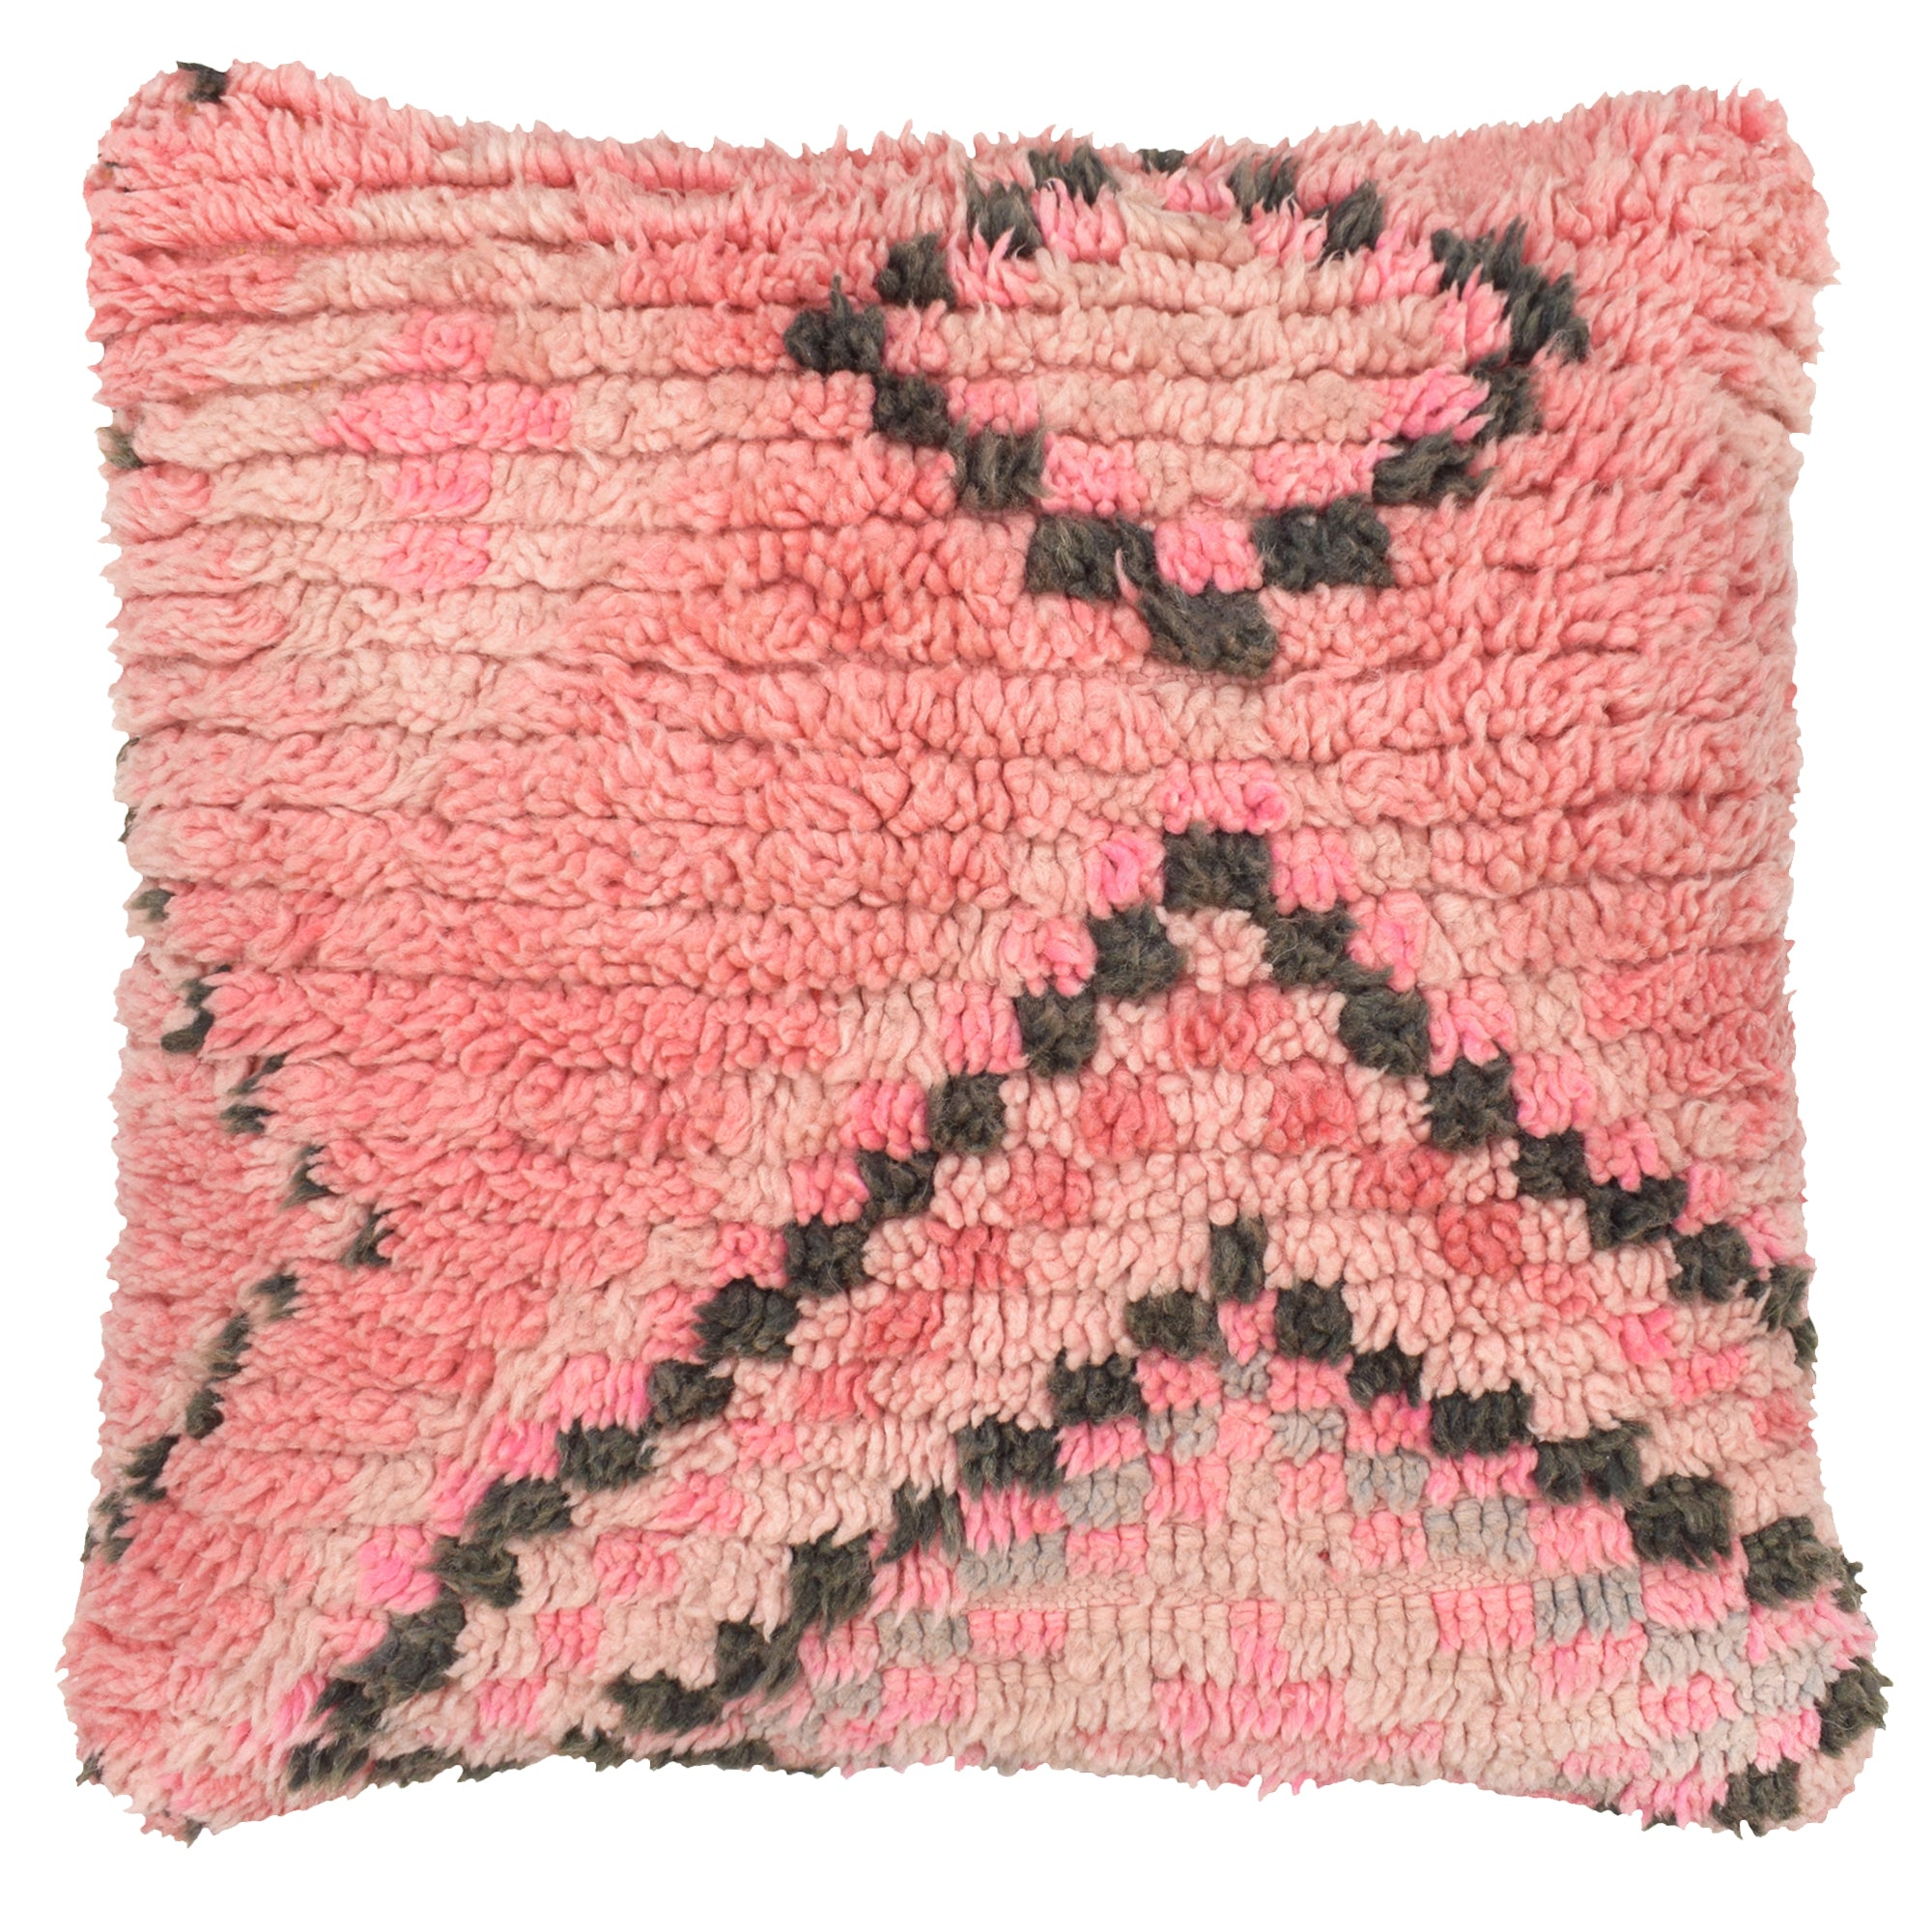 yonder living vintage Moroccan berber cushion blush pink diamonds